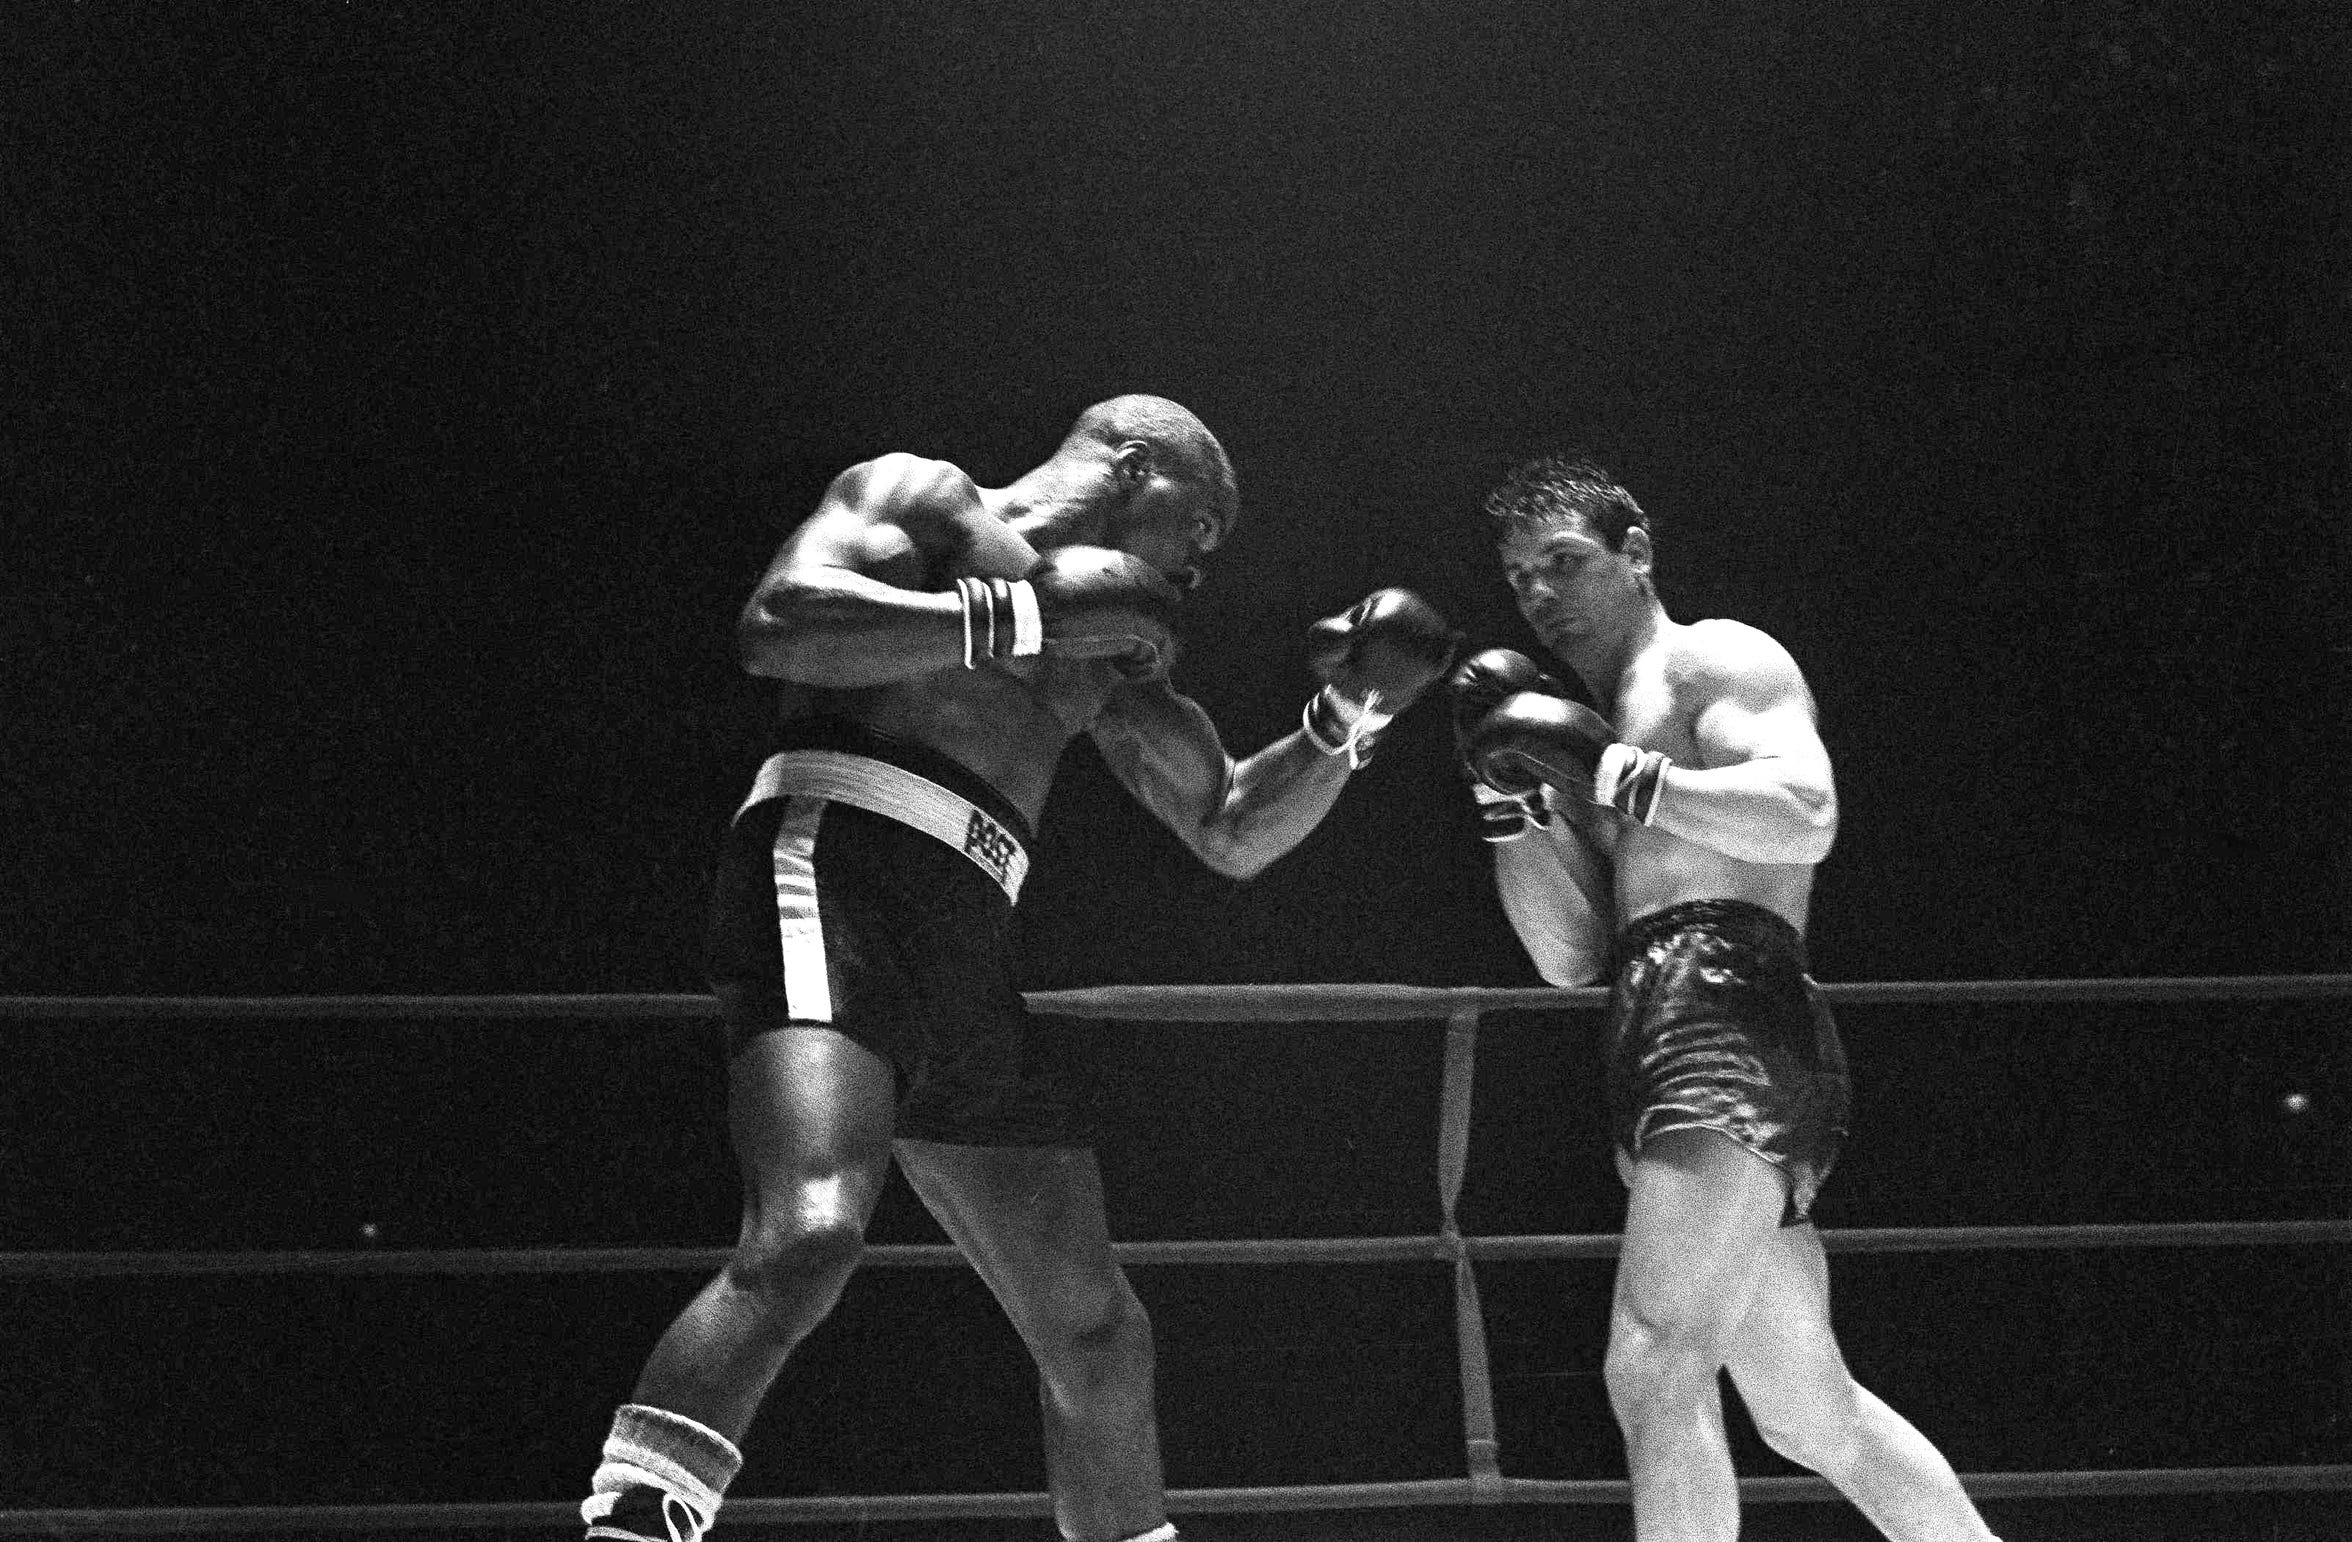 In this Feb. 23, 1965 file photo, Rubin Hurricane Carter, left, knocks out Italian boxer Fabio Bettini in the 10th and last round of their fight at the Falais Des Sports in Paris.